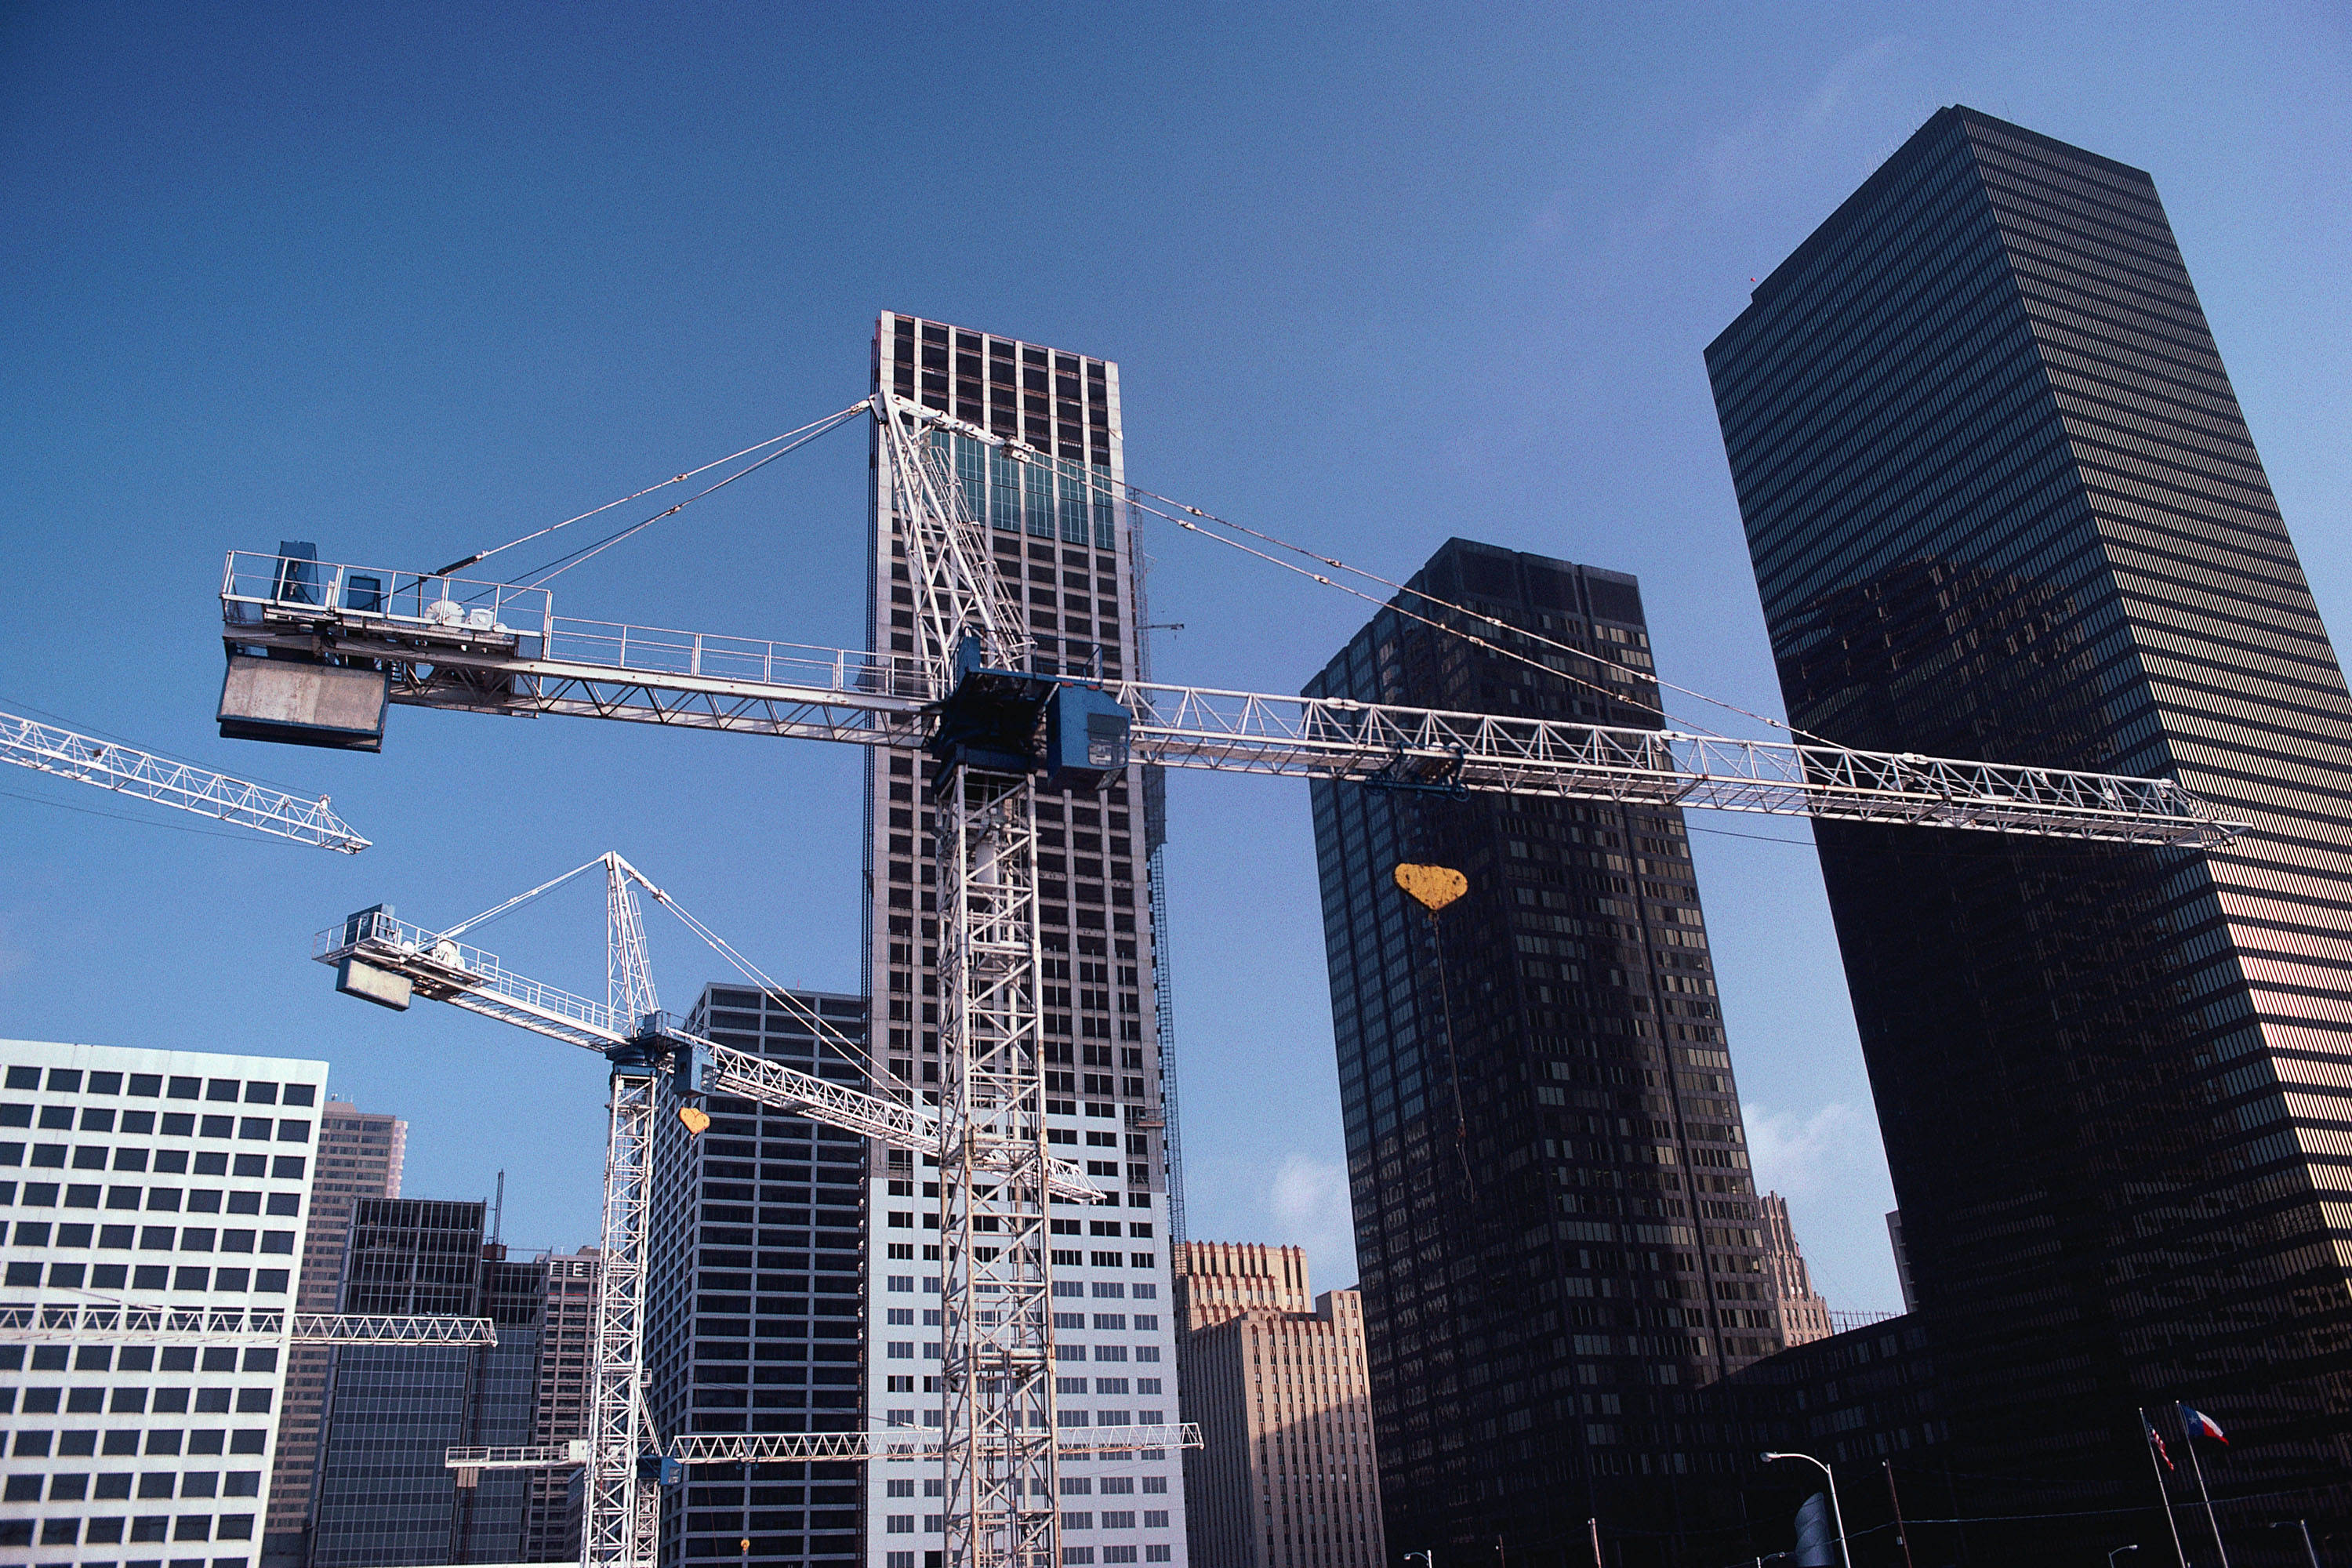 Construction advisory committee to discuss crane operator ...